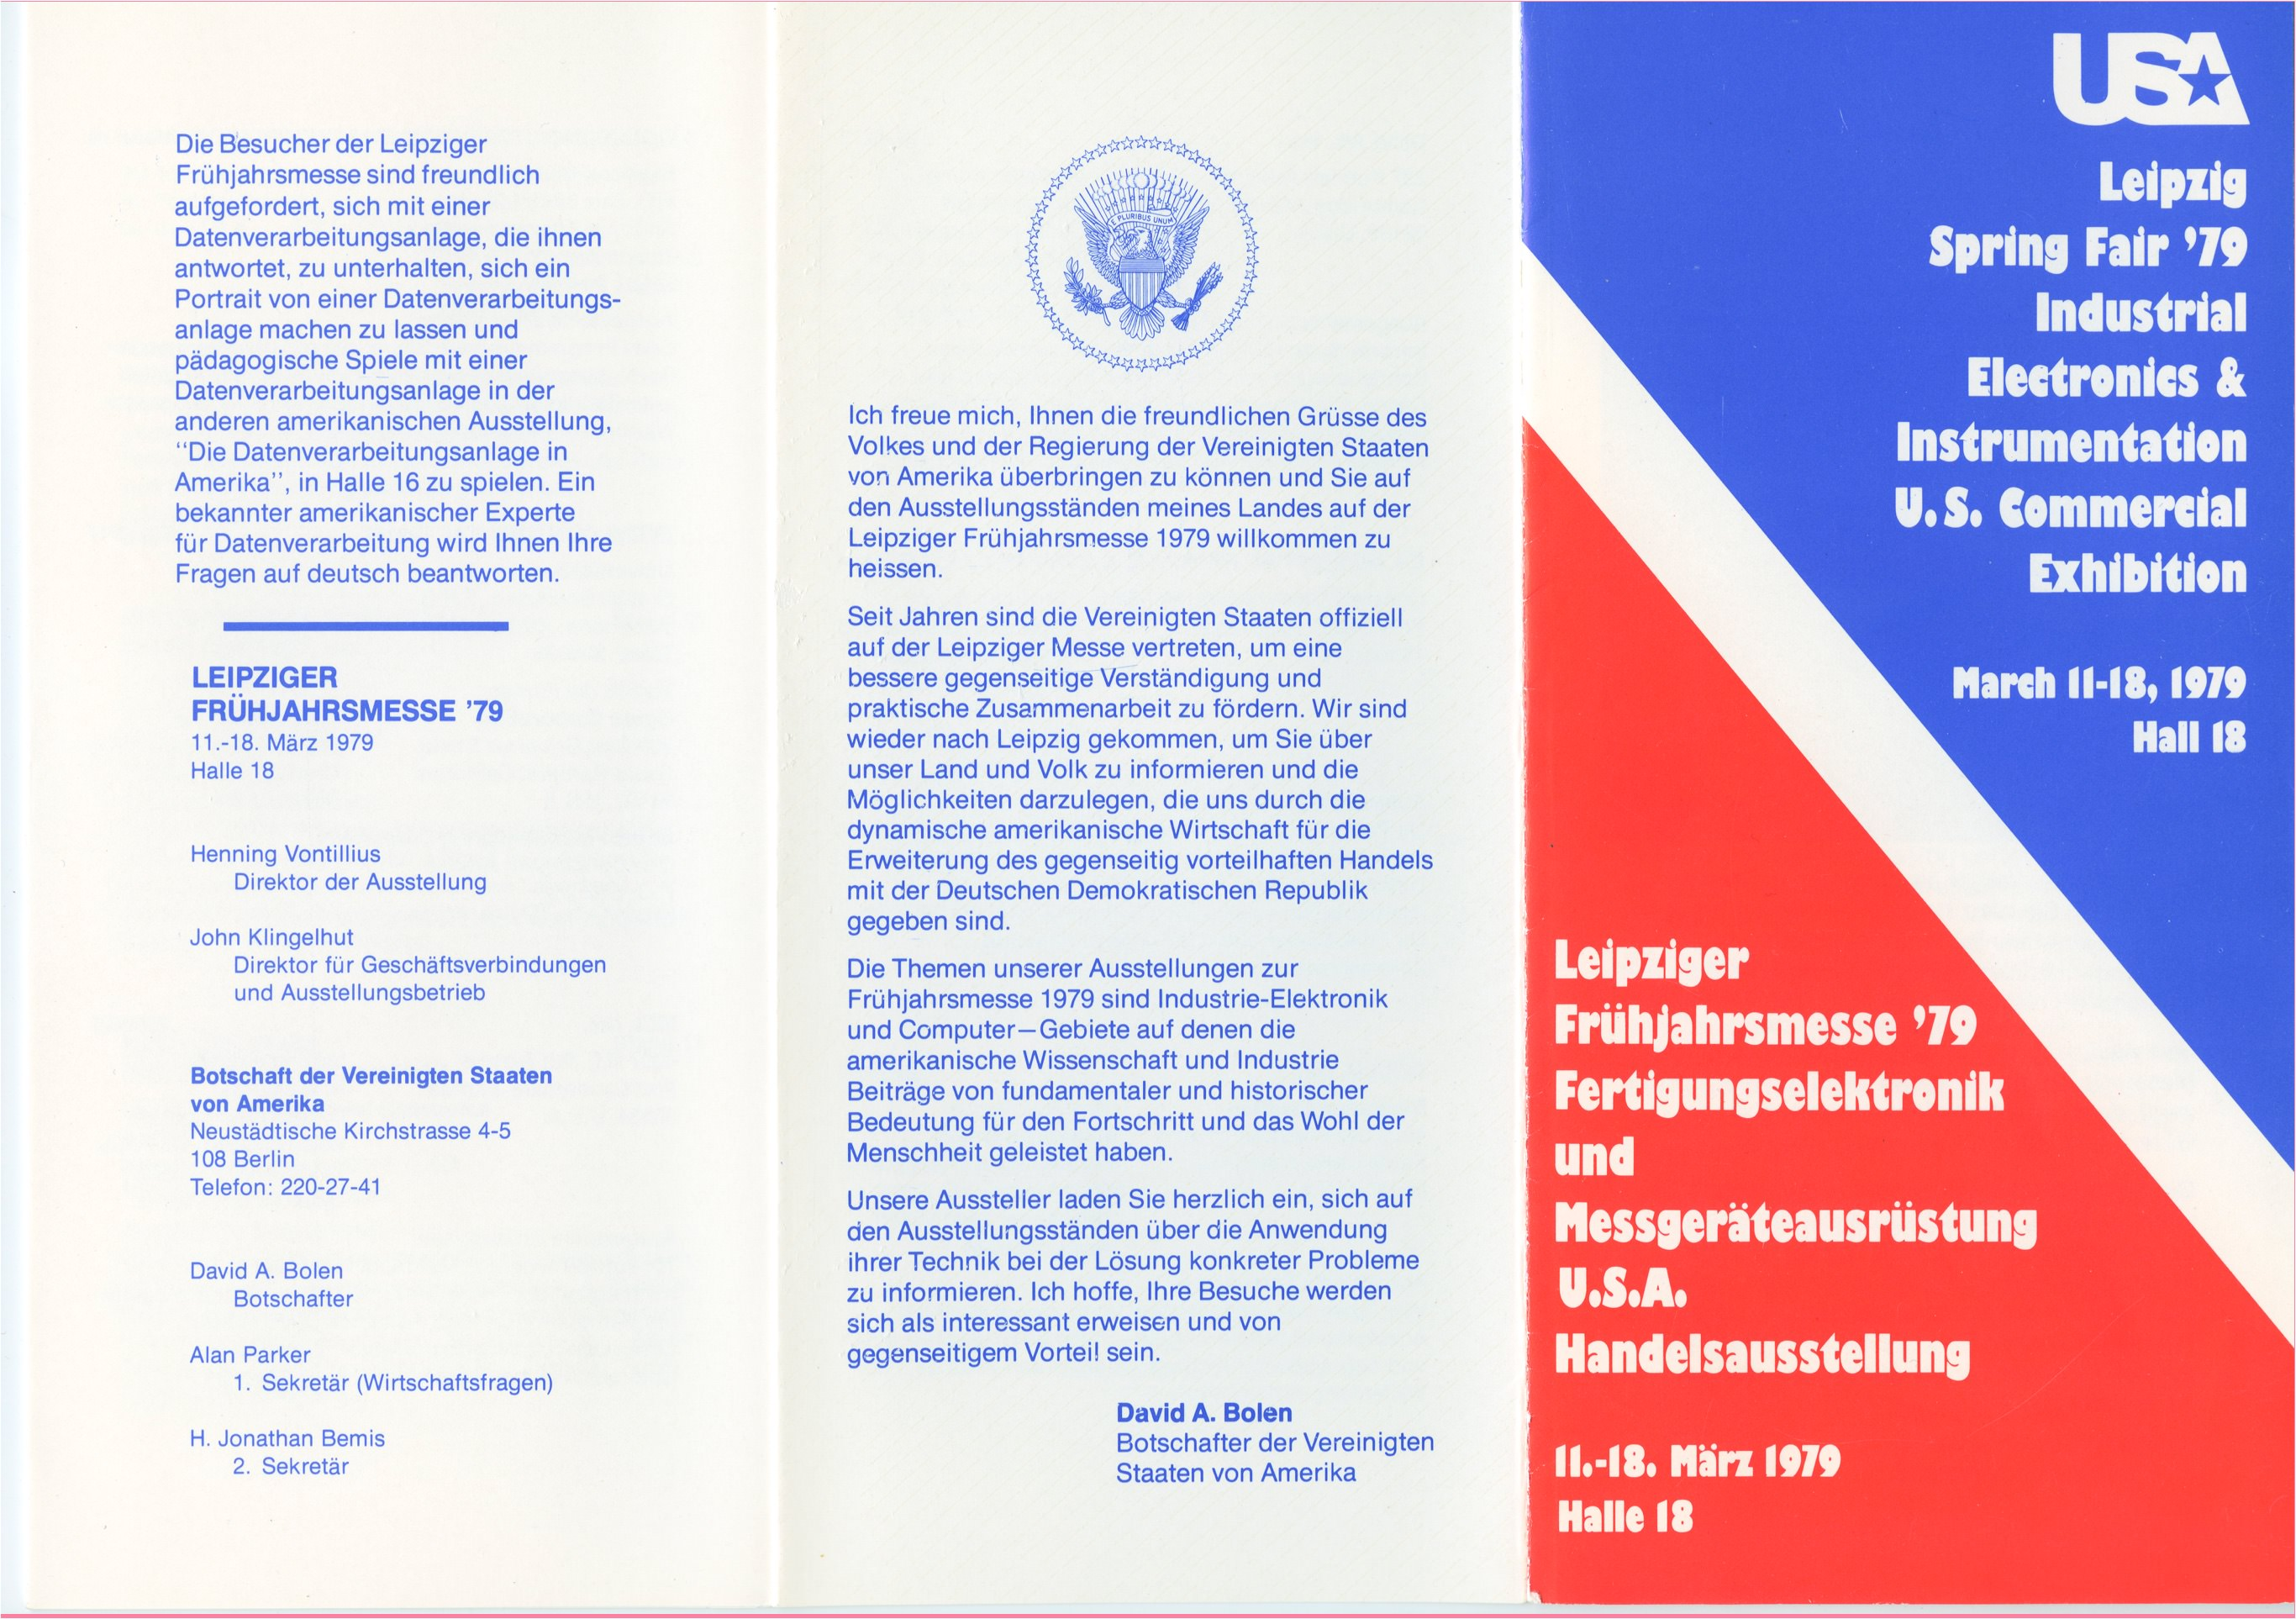 This bilingual flier announces the U.S. Information Agency's contribution to and participation in the Leipzig Fair.